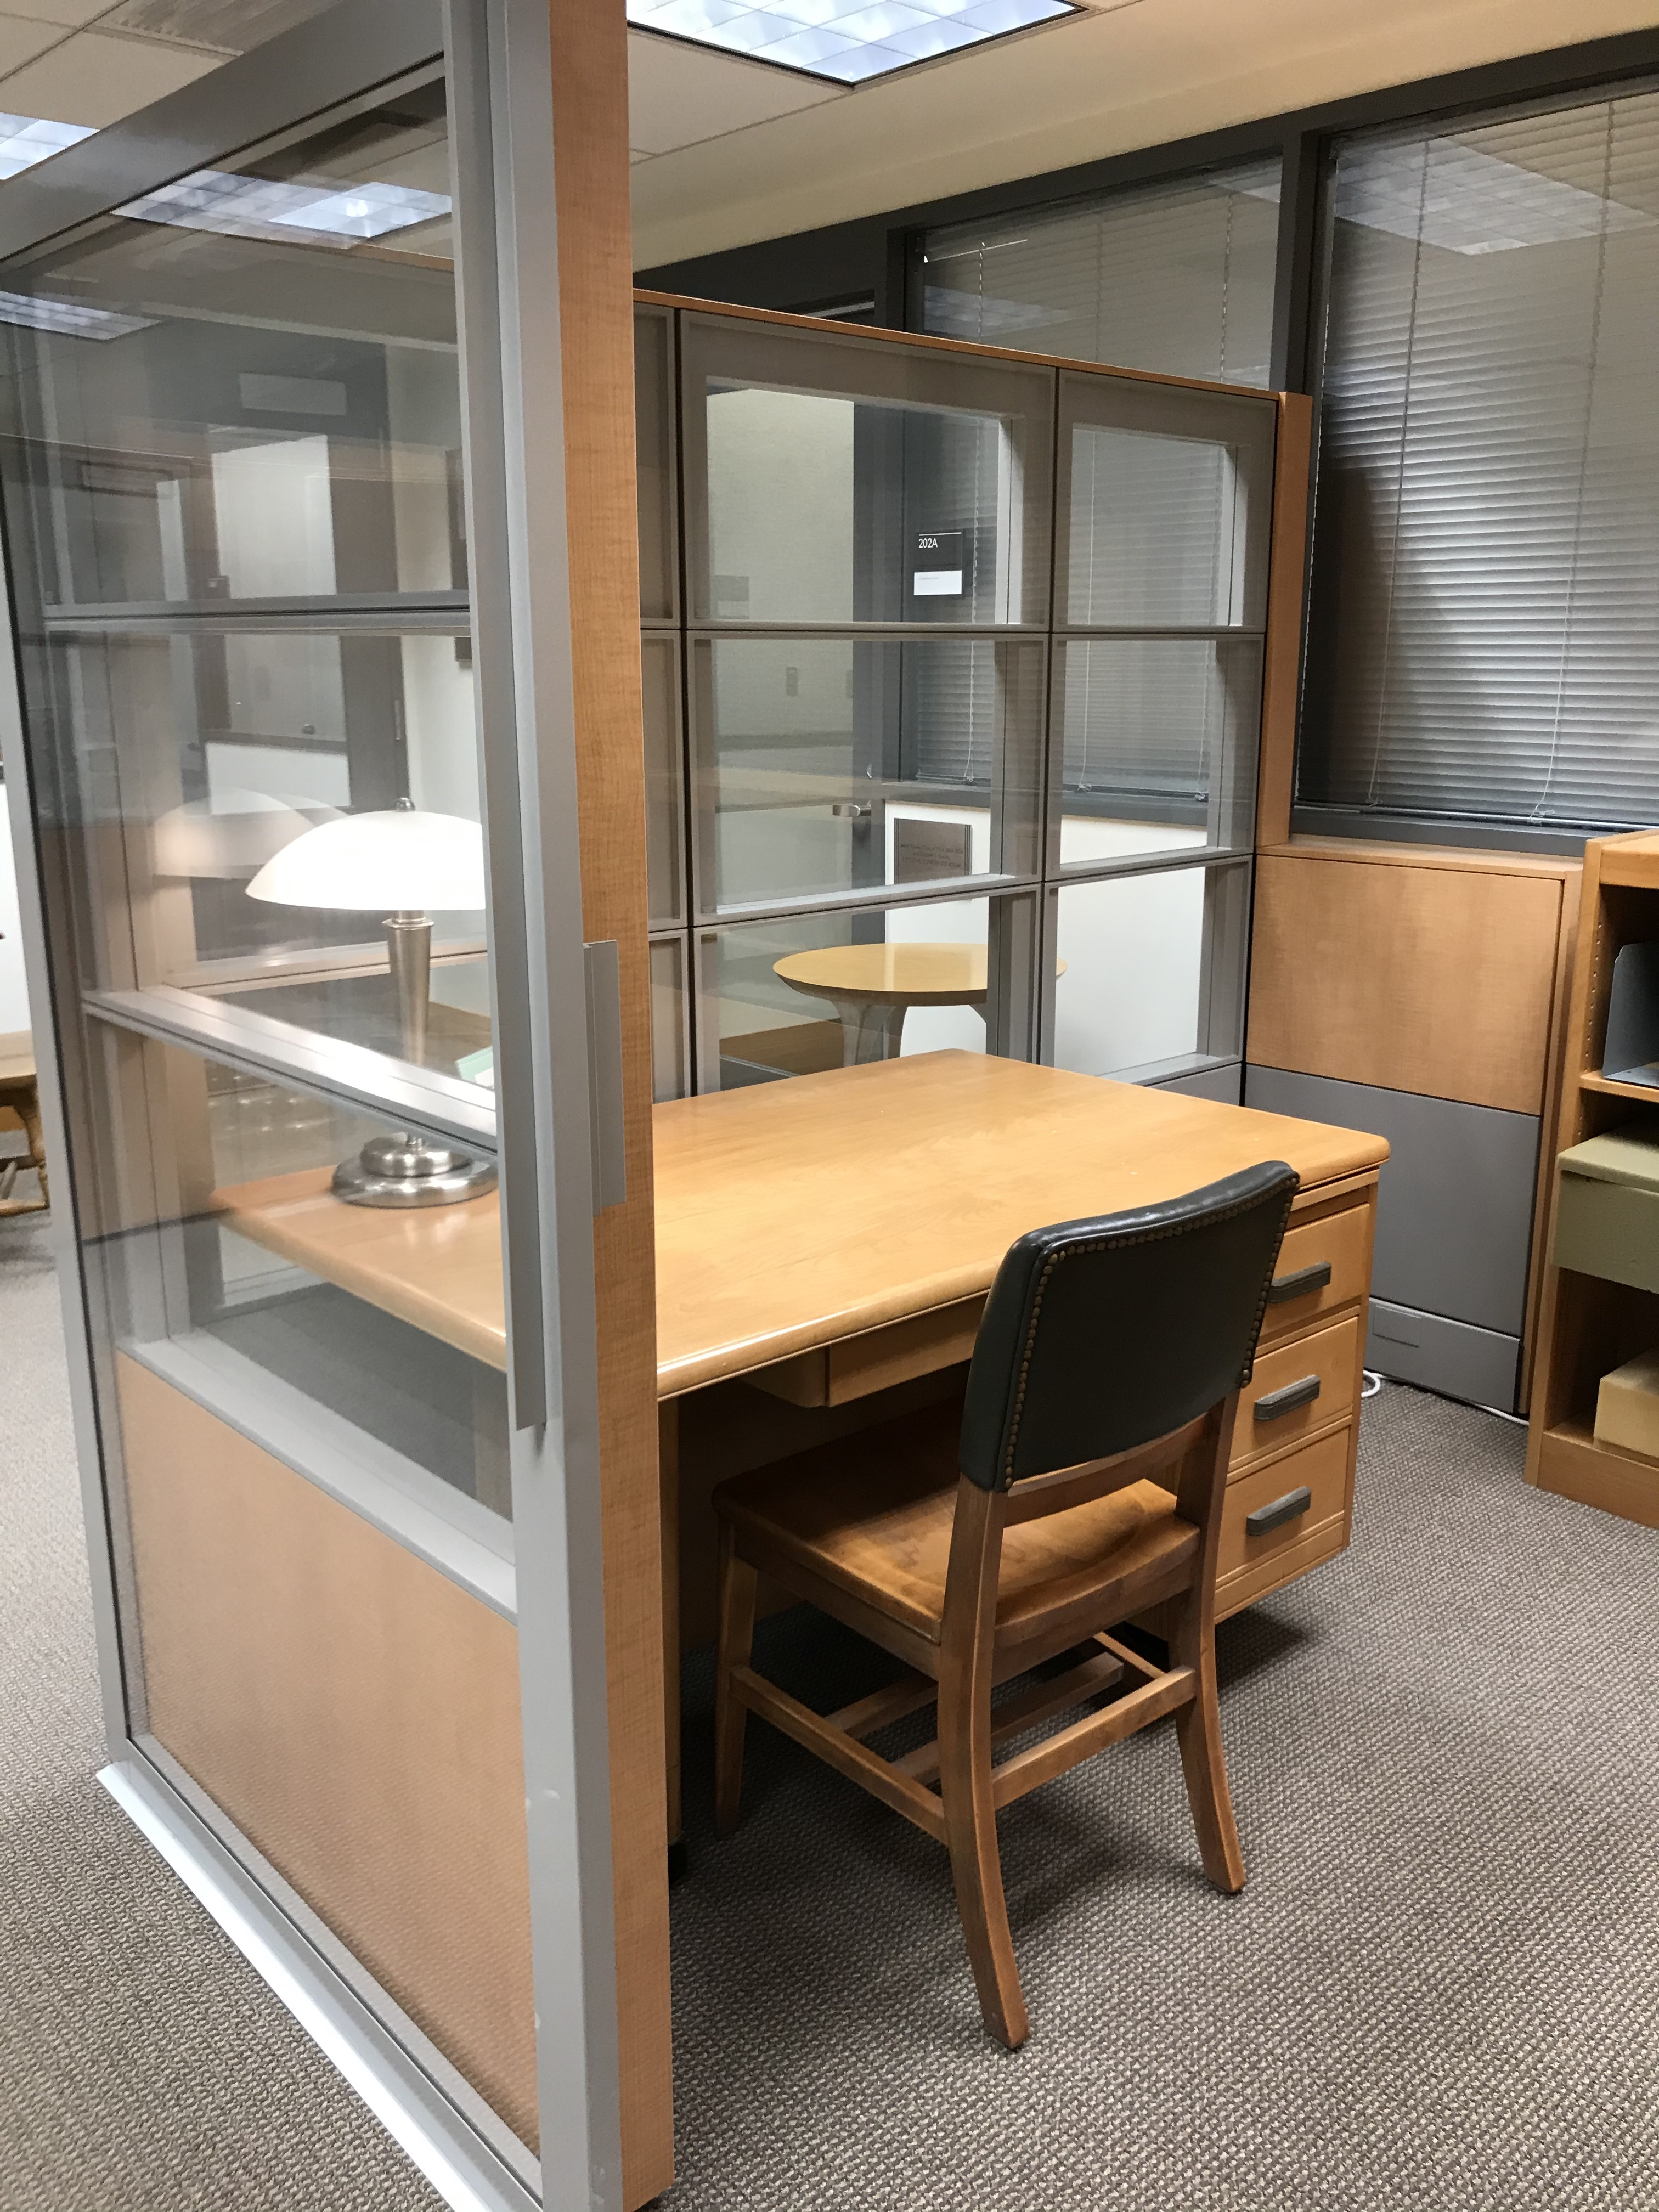 special collections reading room at Mann Library